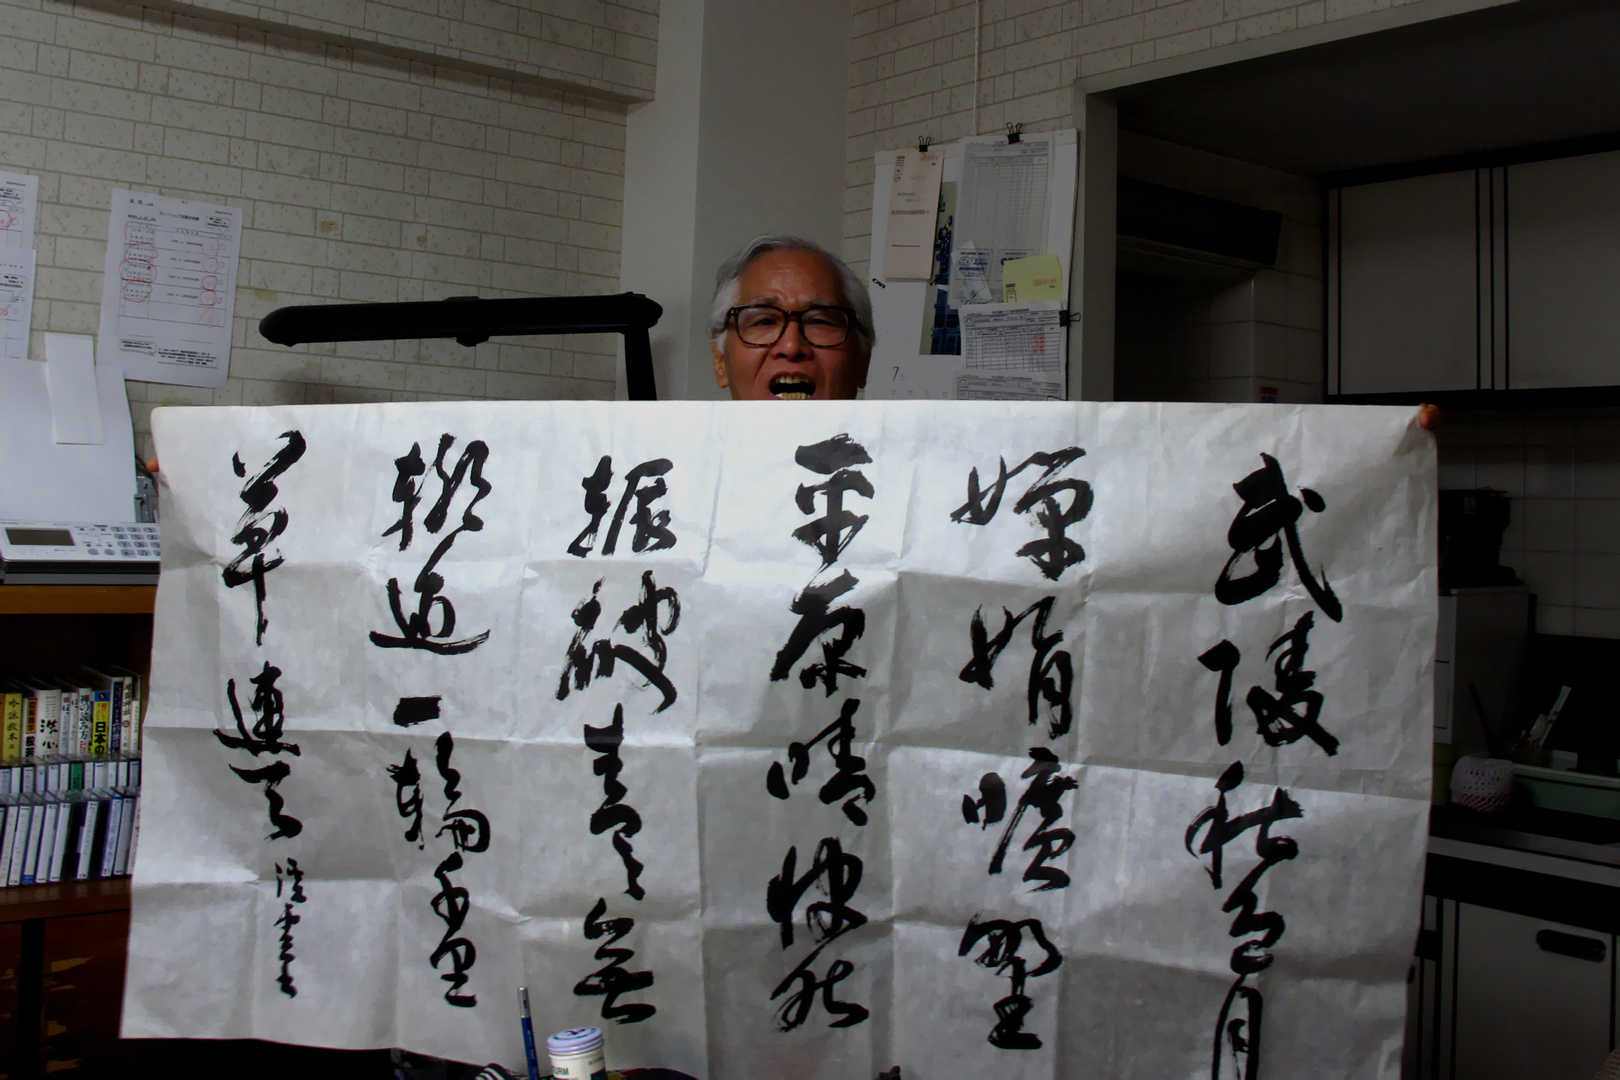 Happy calligraphy master. Japan. 2013